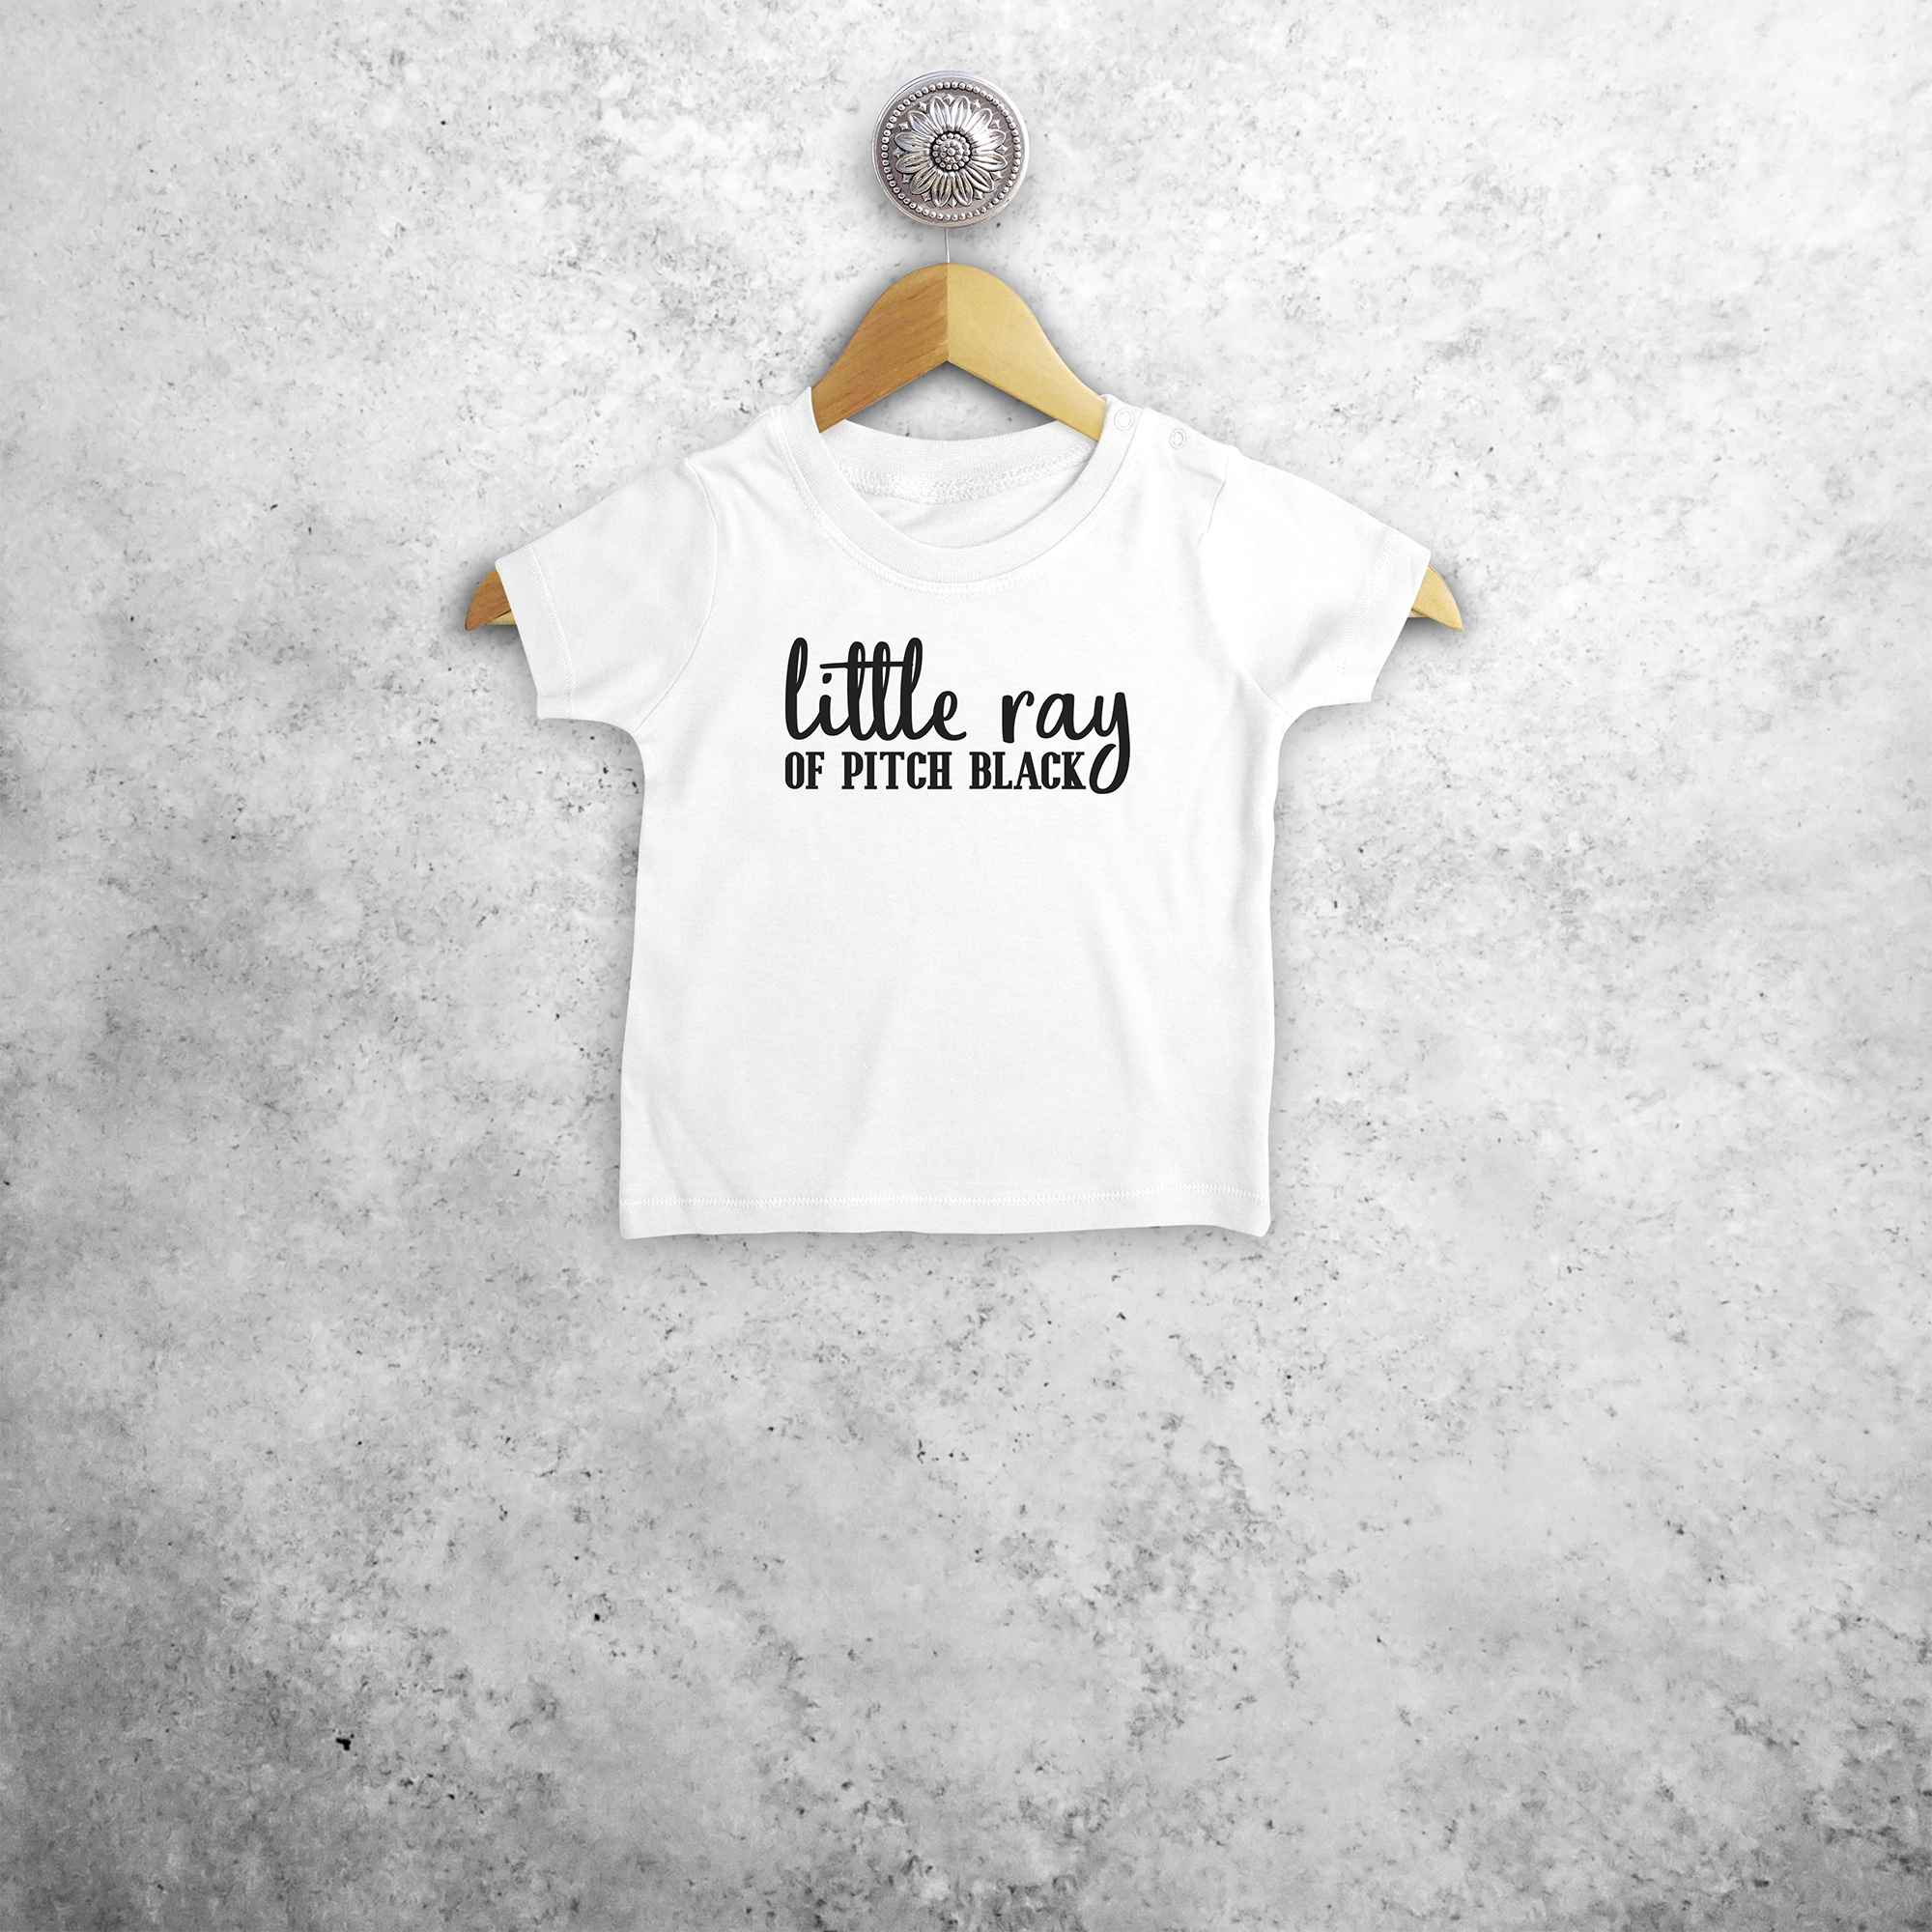 'Little ray of pitch black' baby shortsleeve shirt